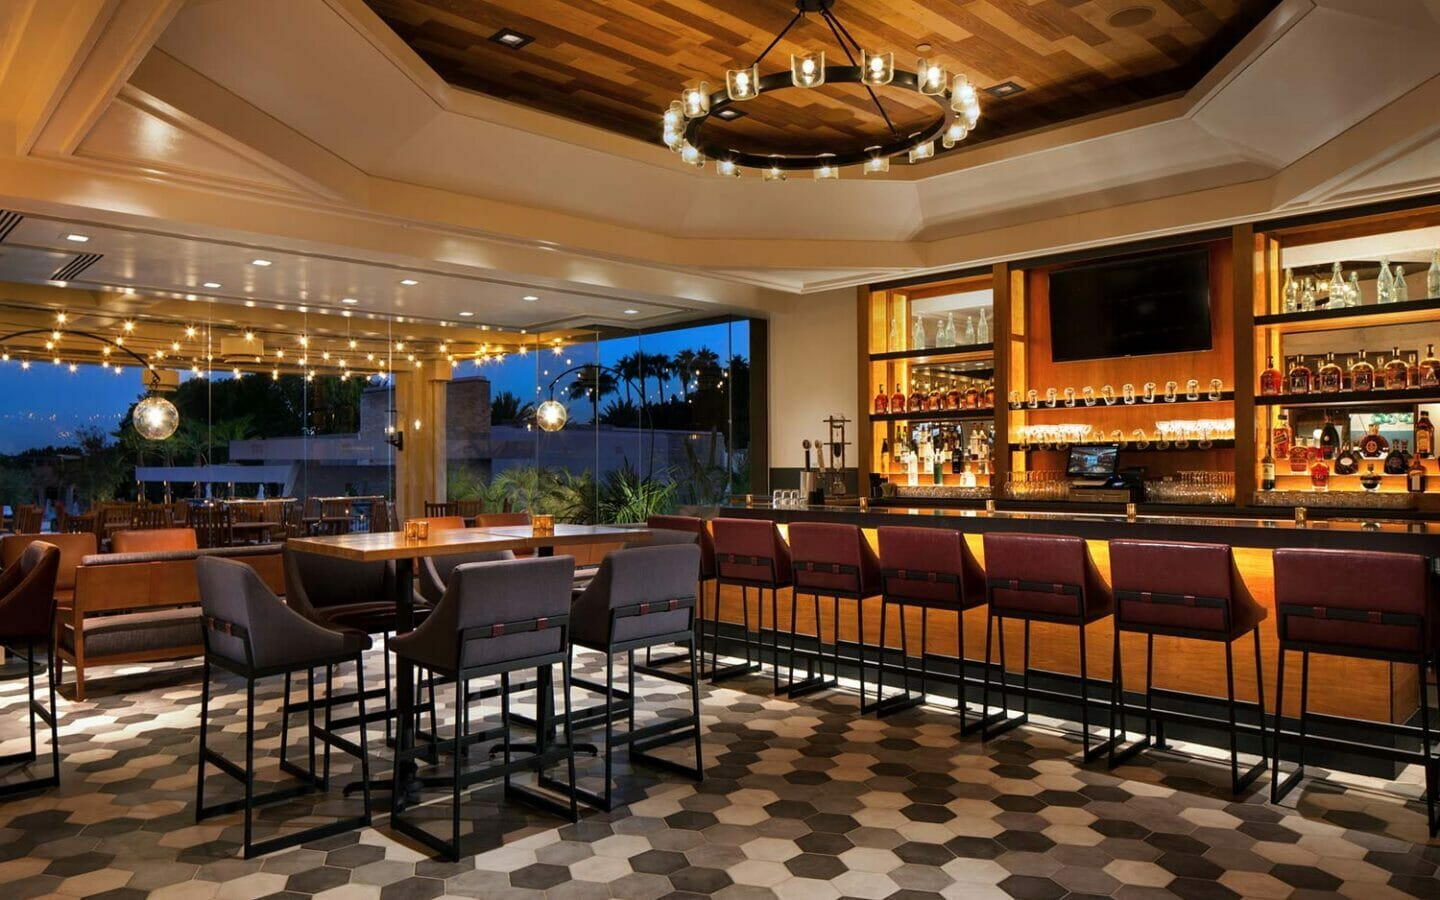 Mowry and Cotton bar area with high chairs lining the bar